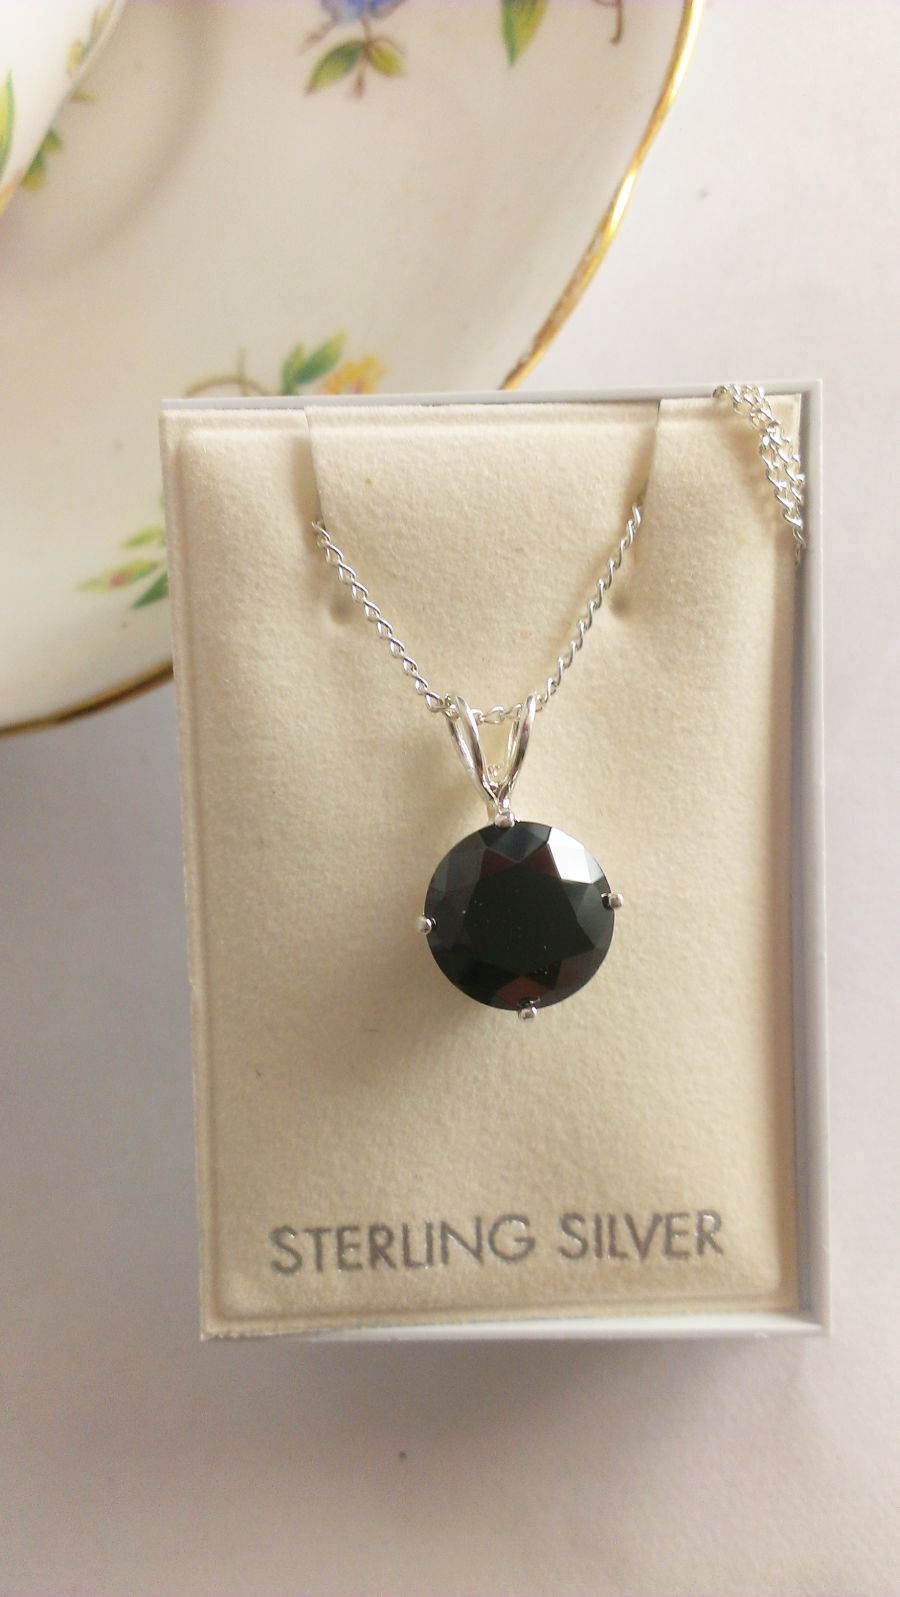 Sterling Silver Faceted Black Pendant